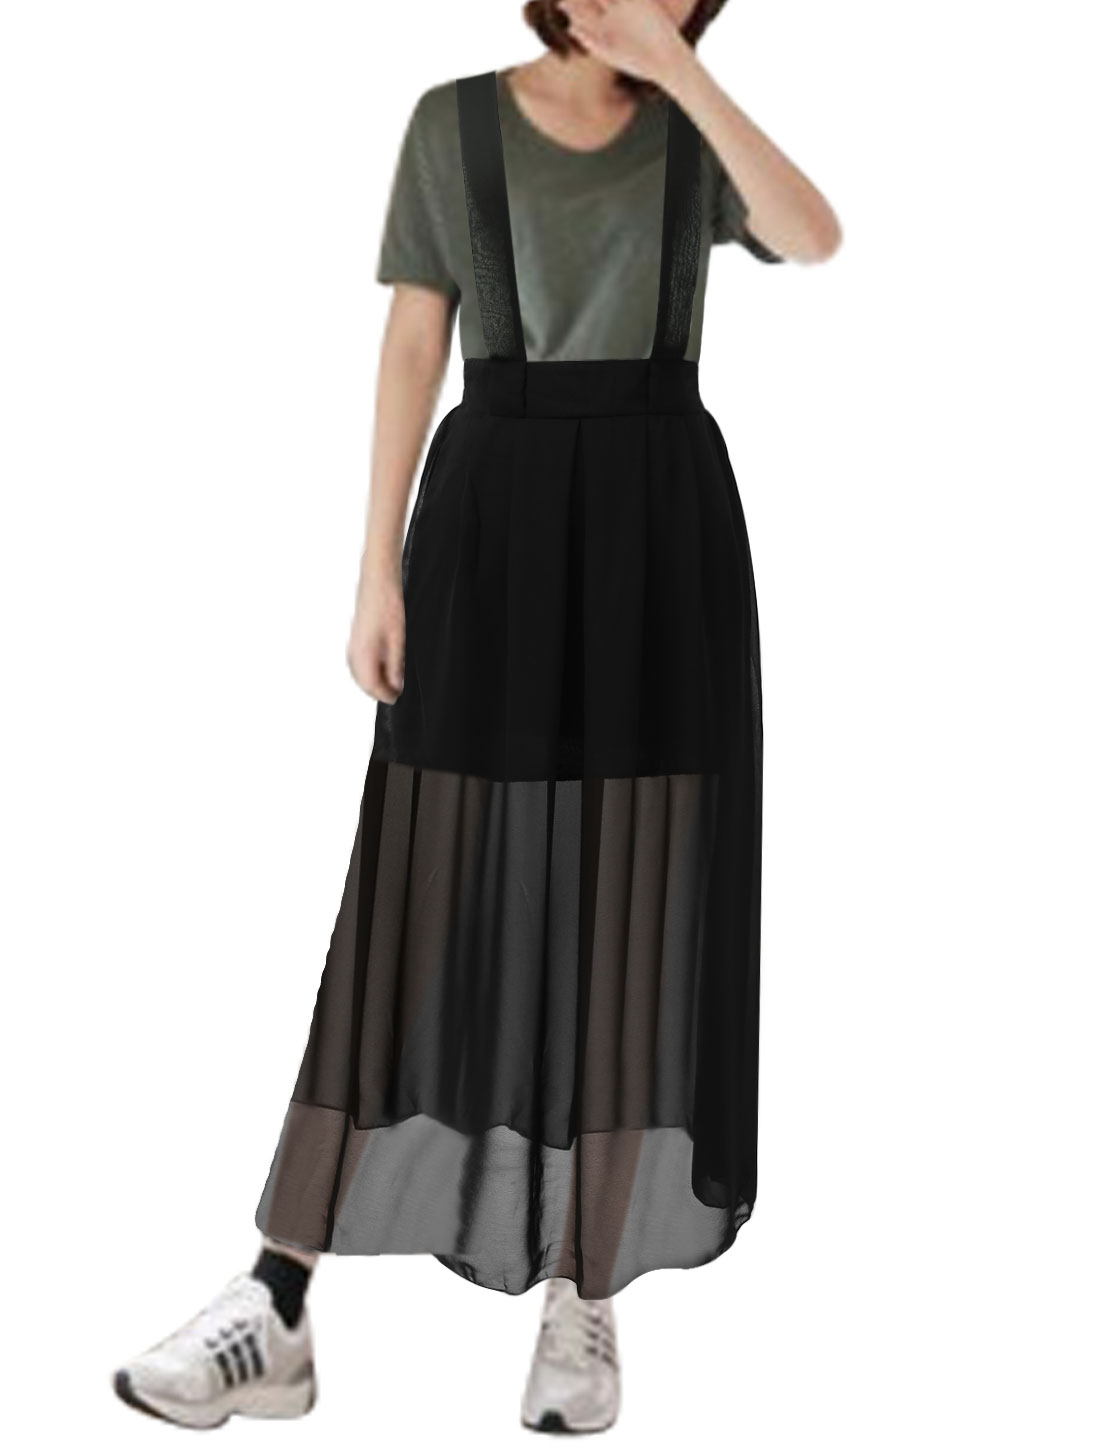 Women Elastic Waist Partial Lined Casual Chiffon Suspender Skirts Black XS